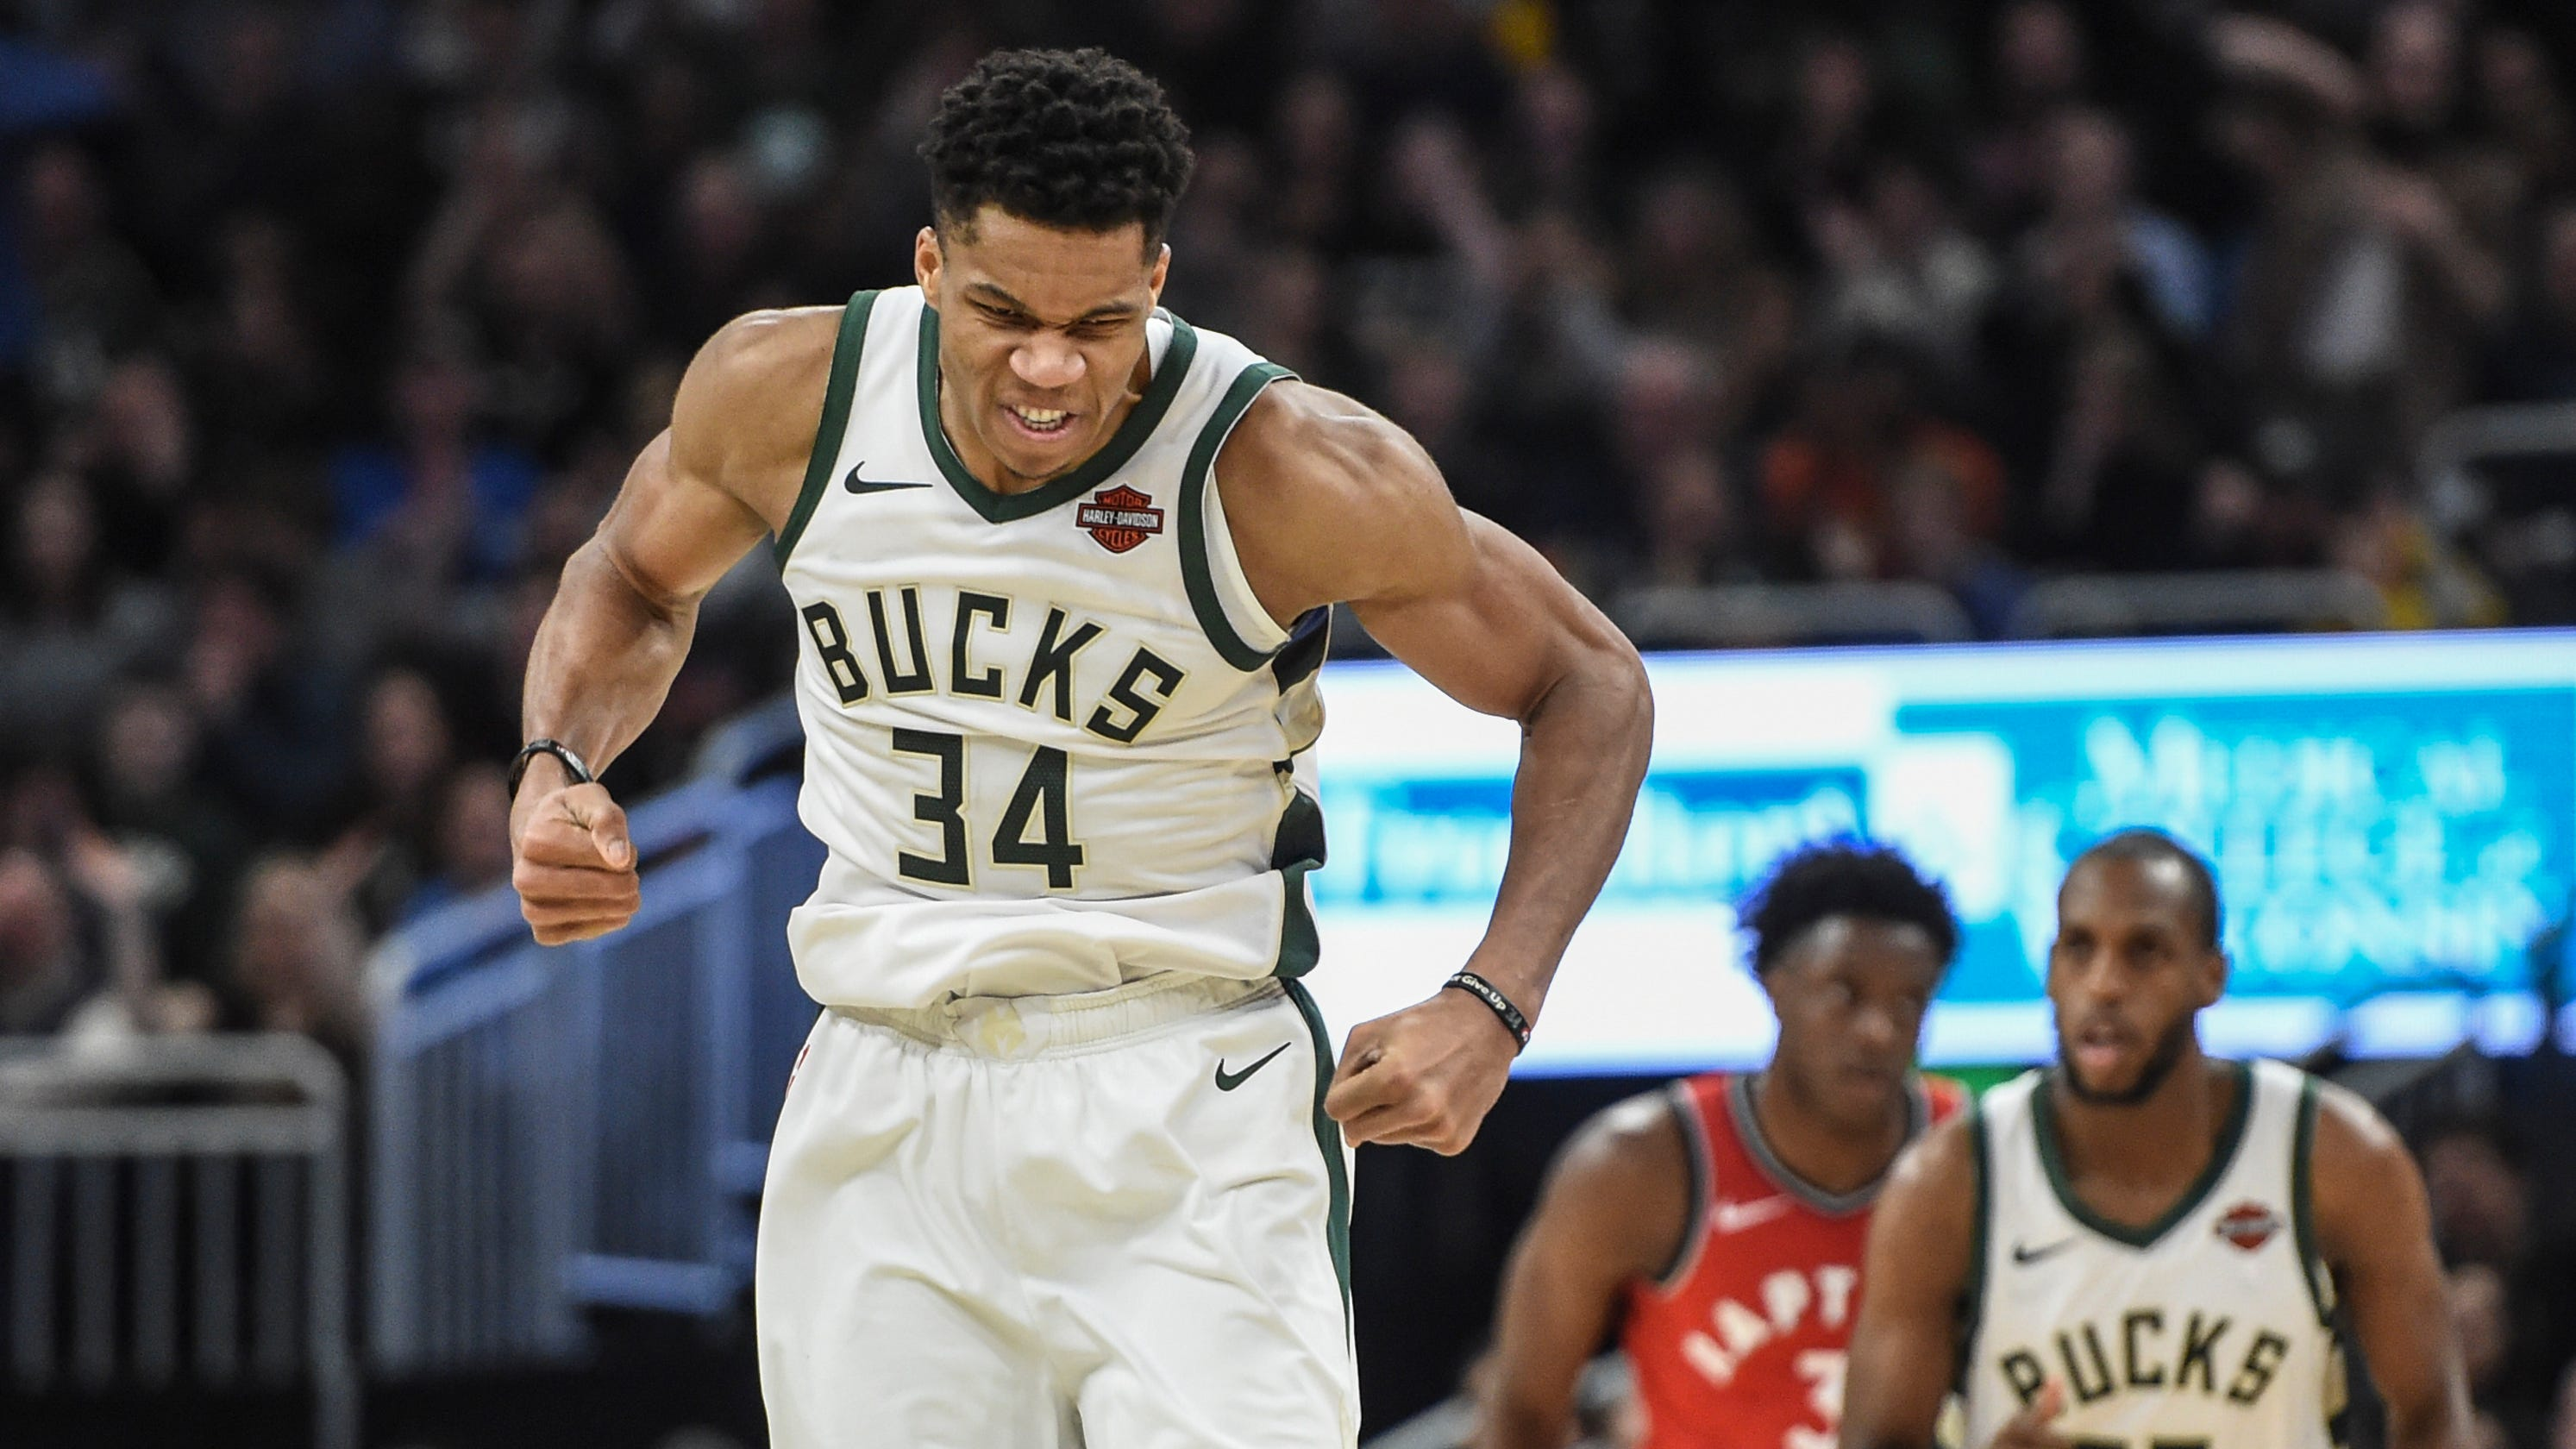 d05ccf22425  He s better   Shaquille O Neal gives Giannis Antetokounmpo the ultimate  compliment